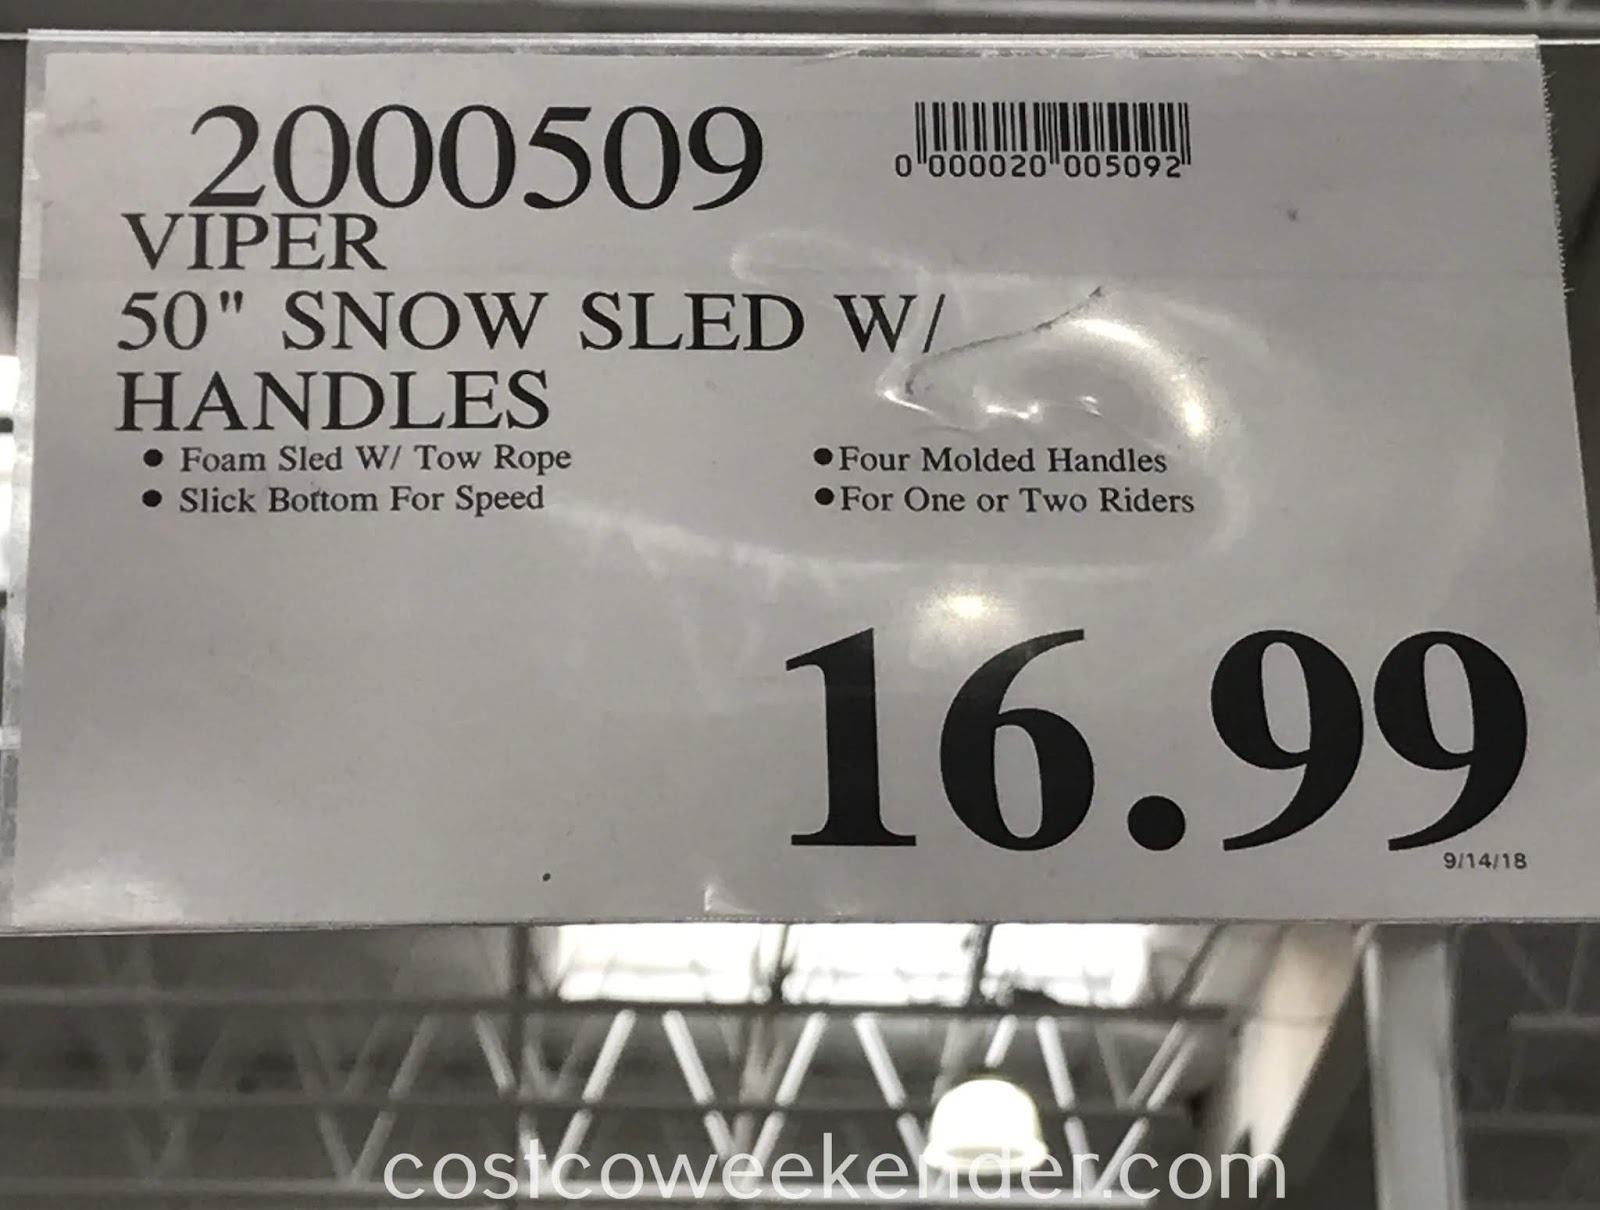 Deal for the Sno-Storm Vipernex Snow Sled at Costco